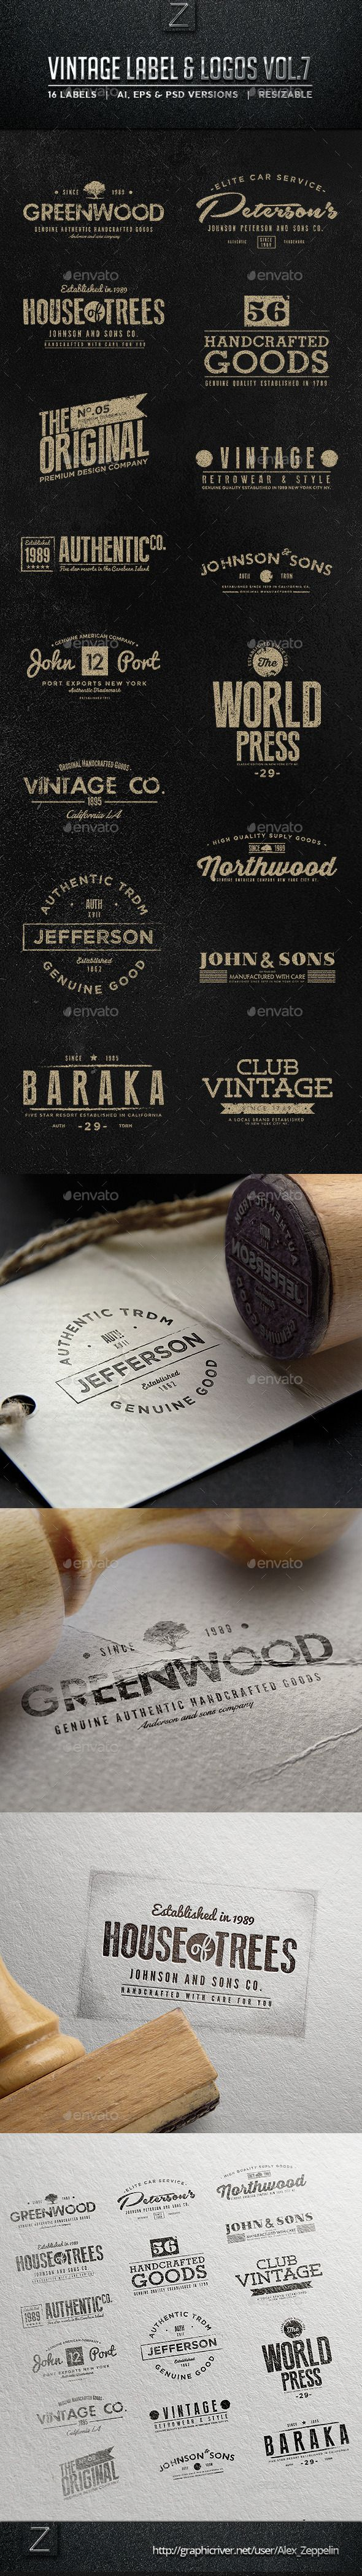 Vintage Labels & Logos | Buy and Download: http://graphicriver.net/item/vintage-labels-logos-vol7/9059520?WT.ac=category_thumb&WT.z_author=Alex_Zeppelin&ref=ksioks